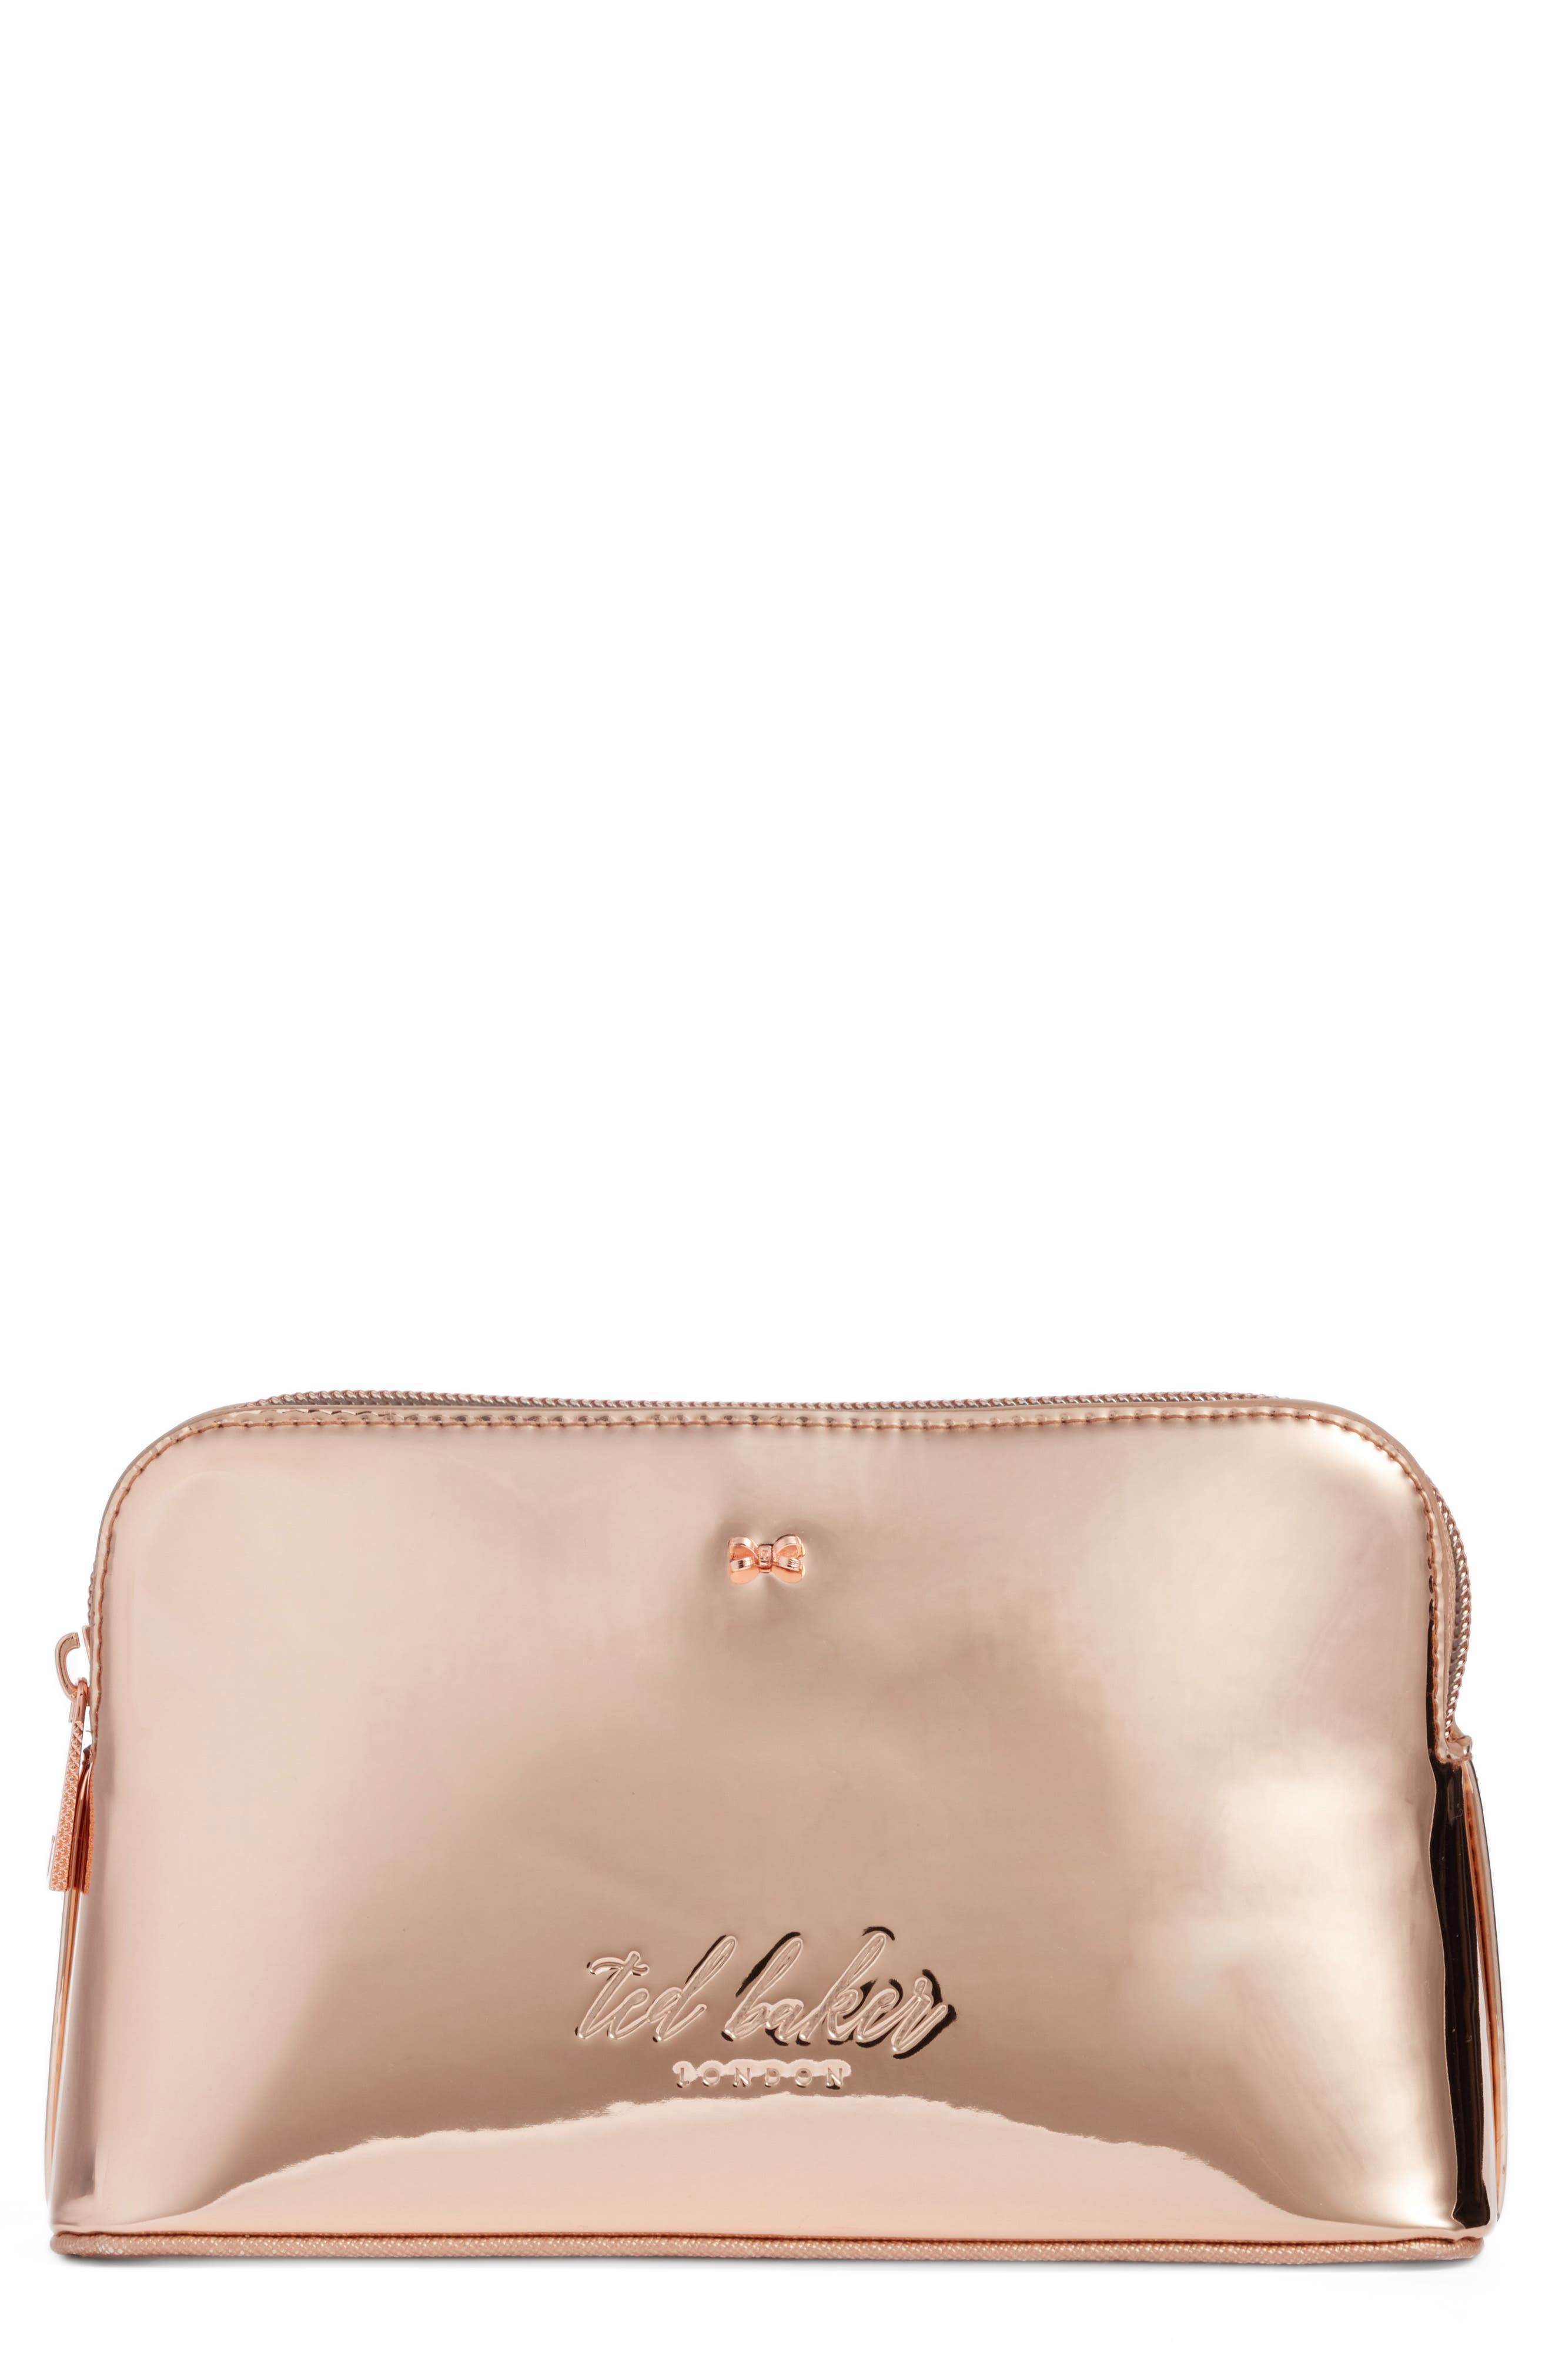 Lindsay Metallic Cosmetics Case,                         Main,                         color, Rose Gold